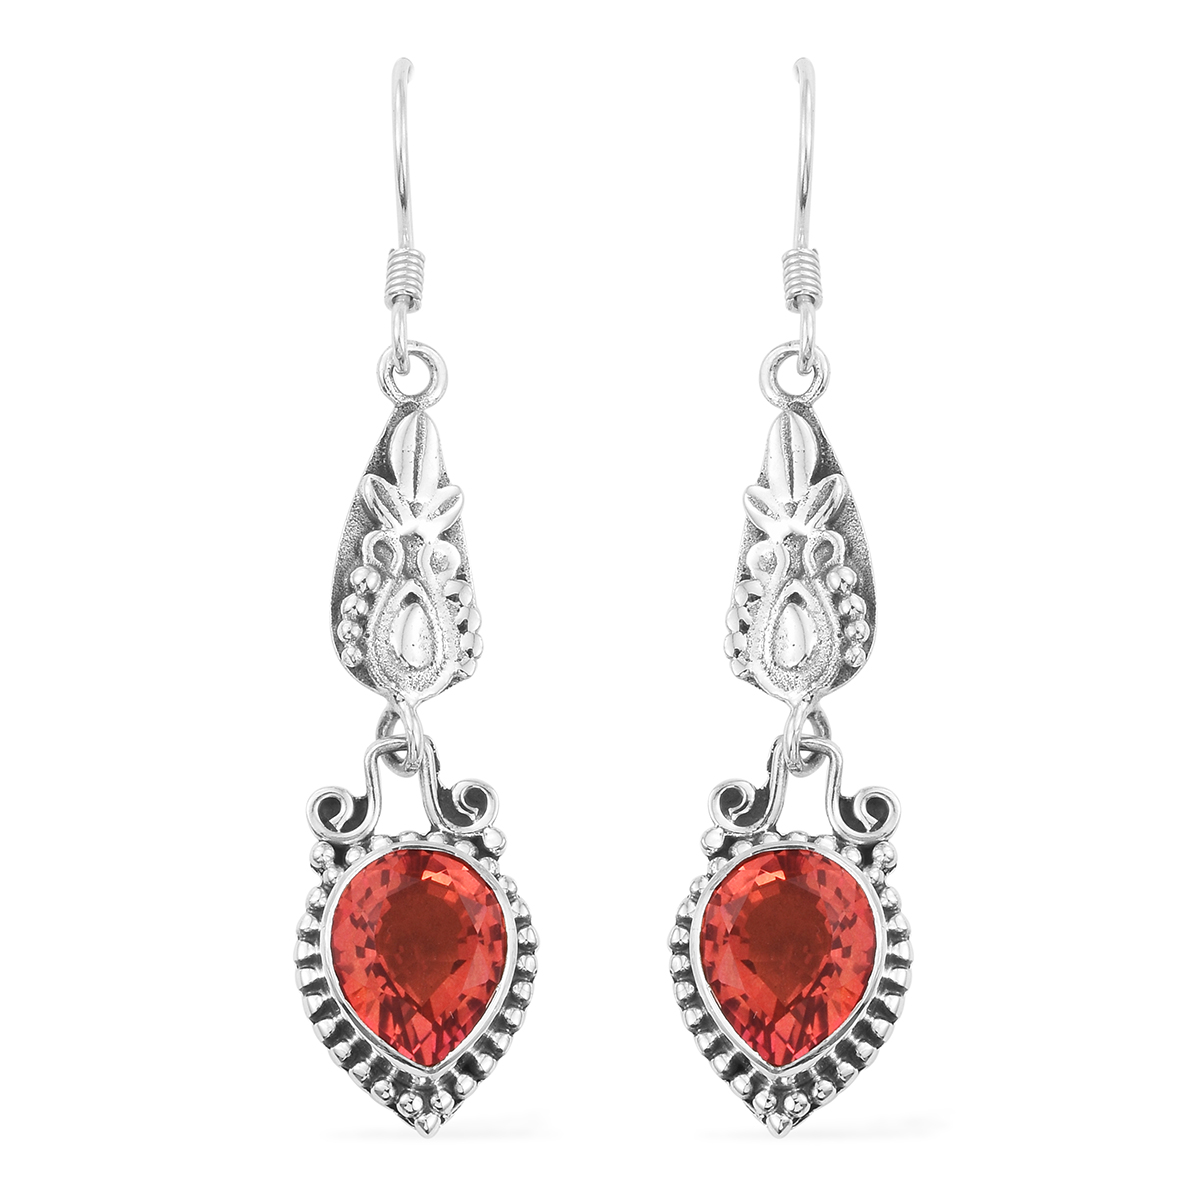 ec207032f Artisan Crafted Padparadscha Color Quartz Sterling Silver Heart Dangle  Earrings TGW 7.72 cts. | Shop LC